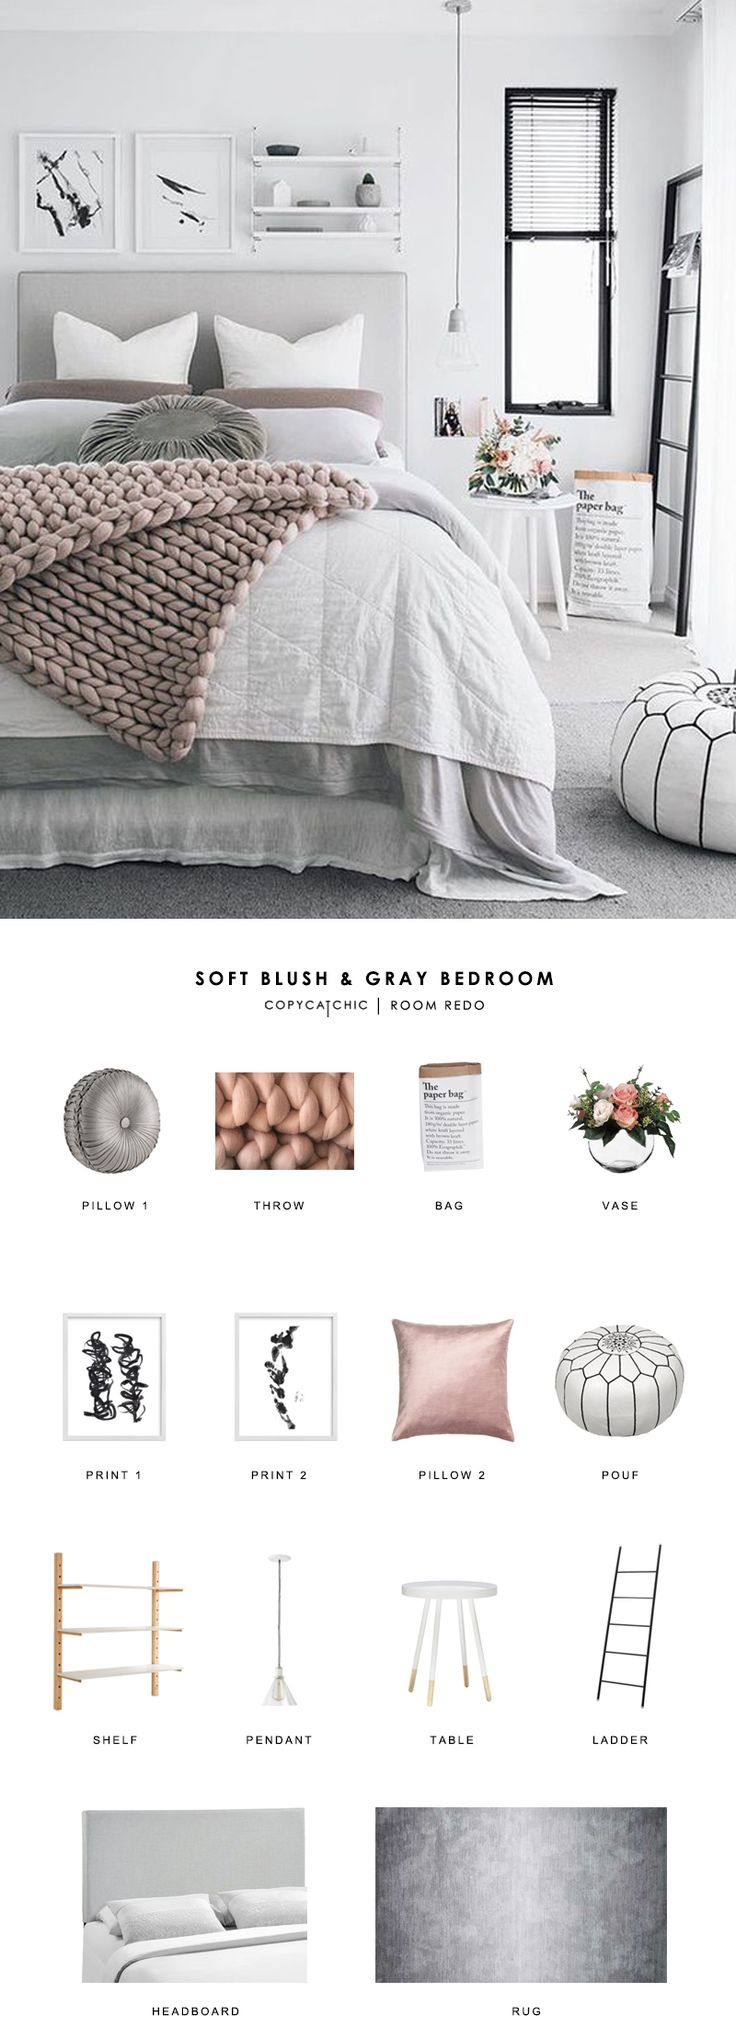 Bedroom decorating ideas on a budget pinterest - Copy Cat Chic Room Redo Soft Blush And Gray Bedroom Copy Cat Chic Guest Bedroom Decorbudget